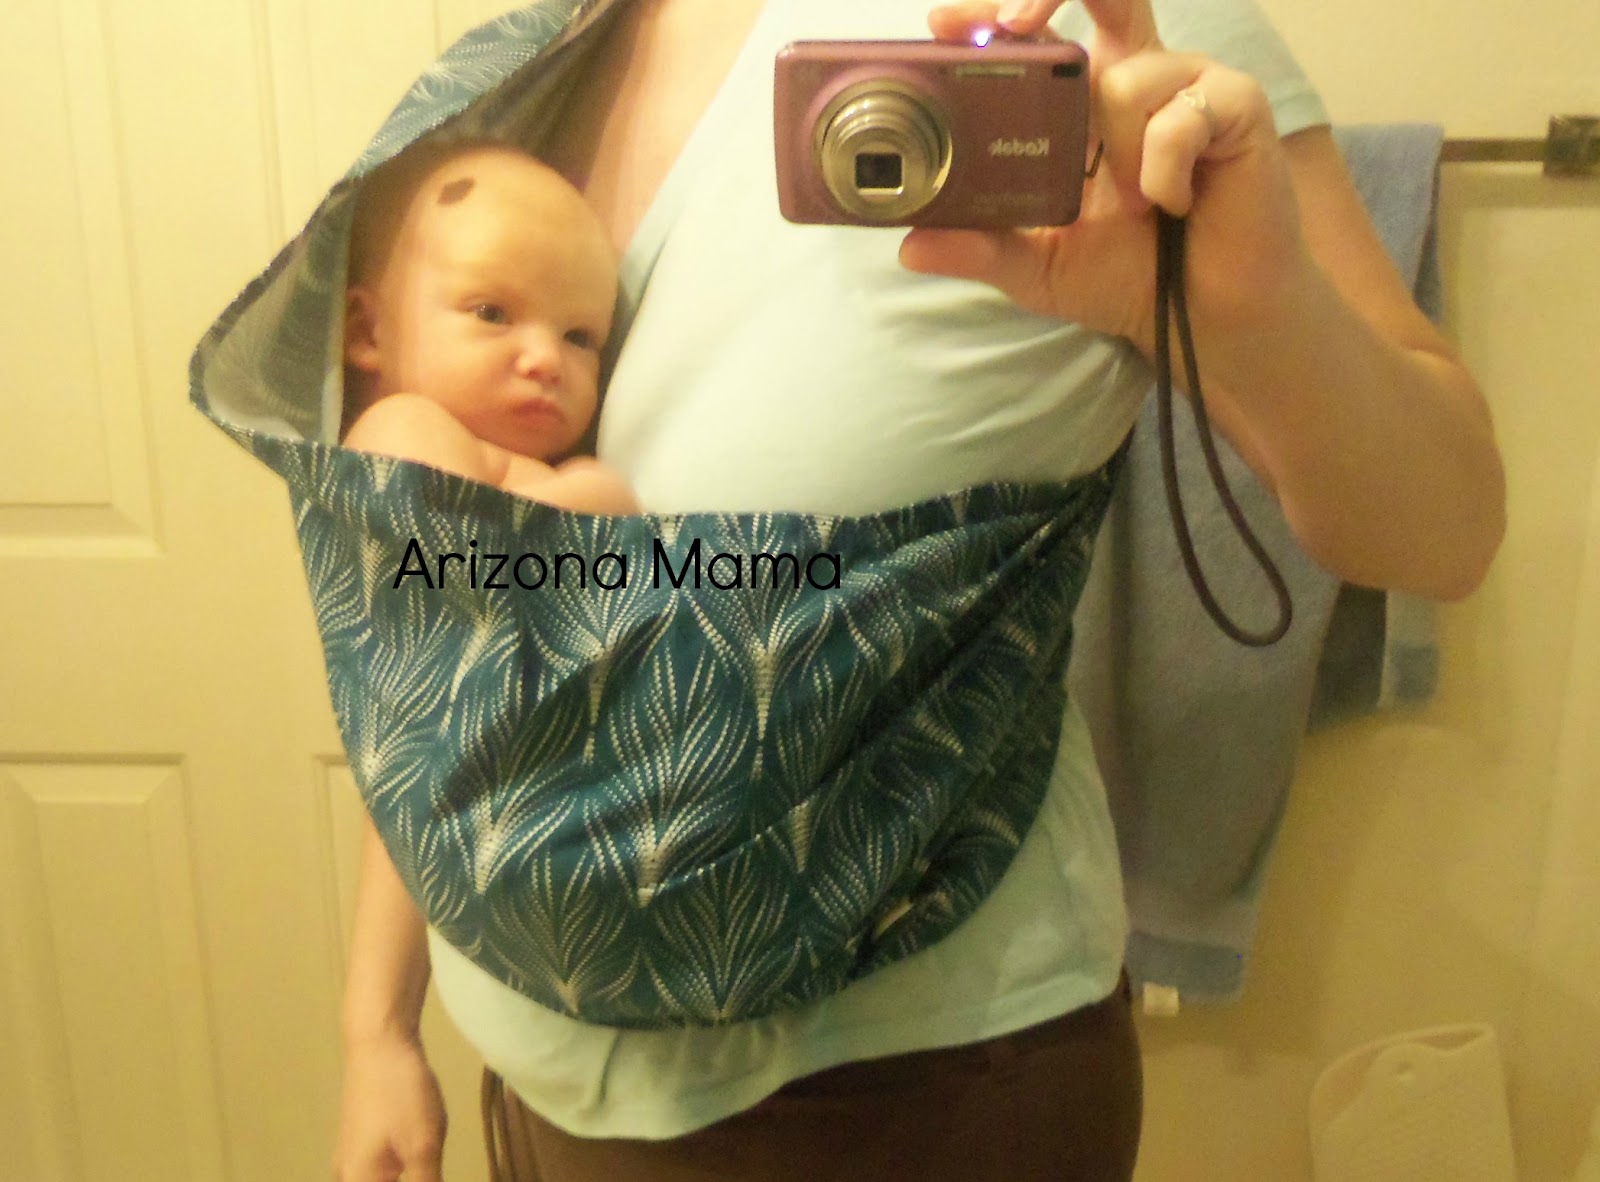 This sling is a waste of money!! I'm 5'1 pre-pregnancy lbs currently post pregnancy lbs and ordered a size 3 the sling feels too small and when I tried to squeeze my infant into the sling I couldn't get a fit that didn't force her chin to bend forward which can cut off her air supply.